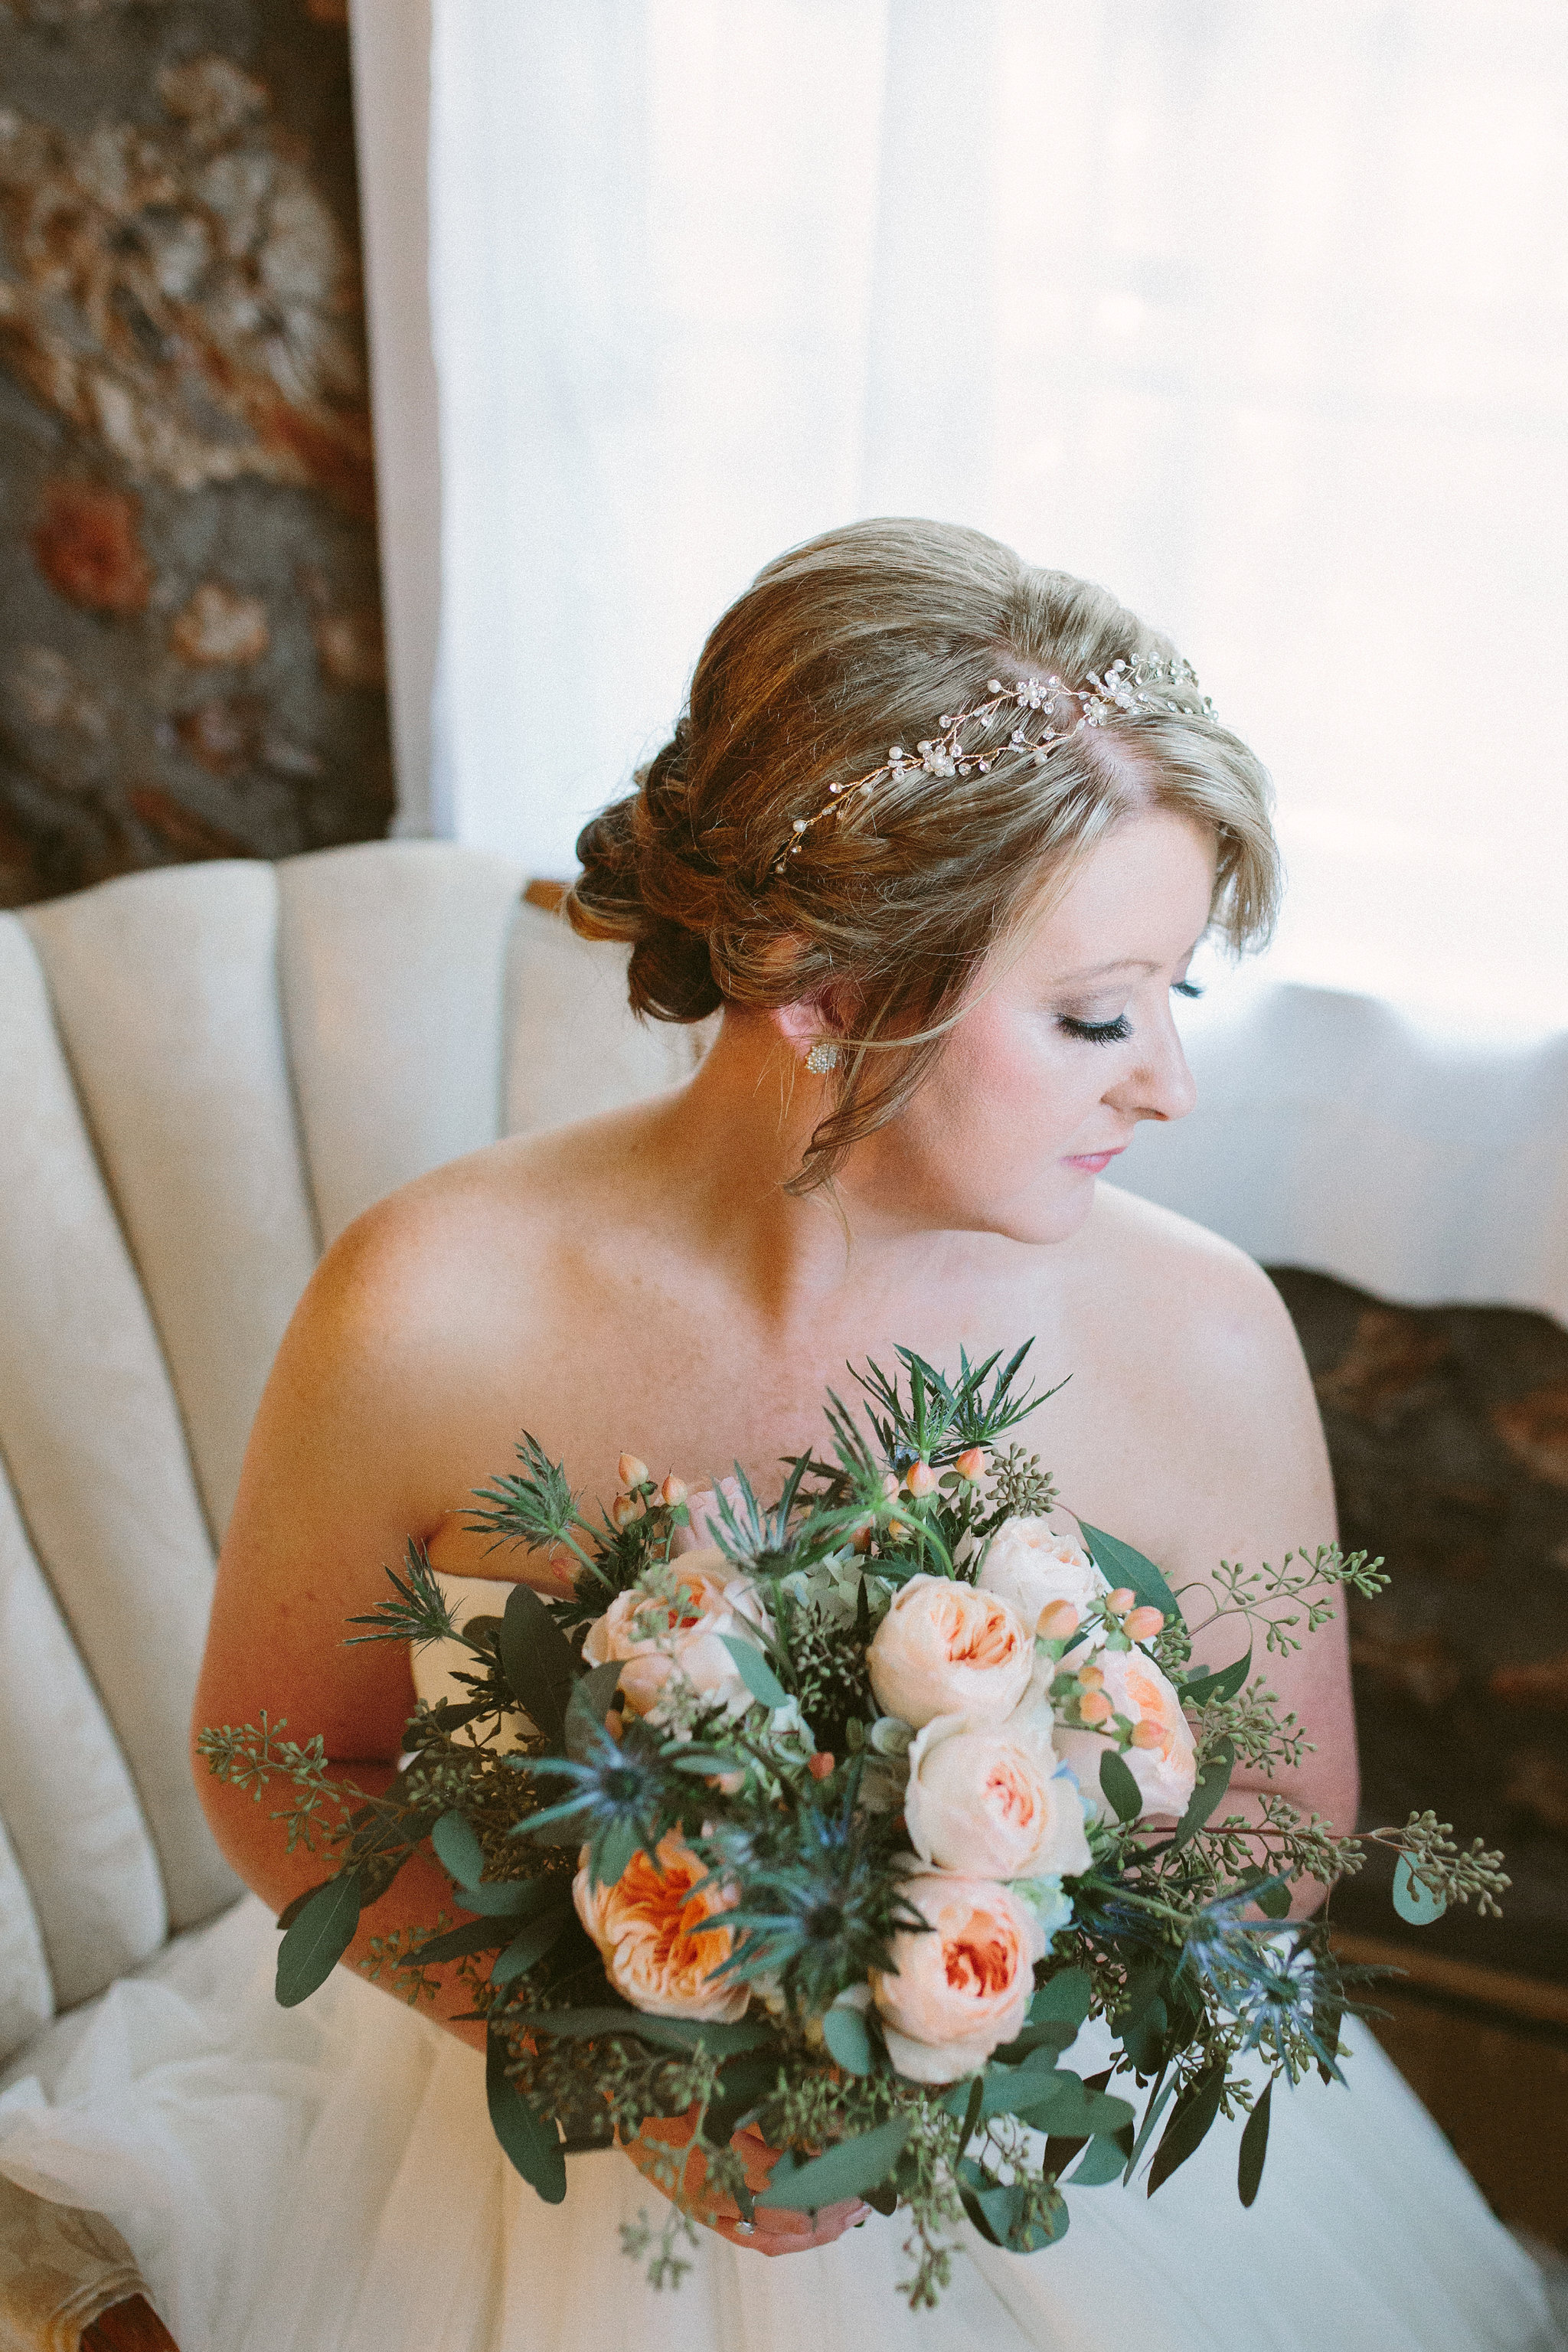 Melissa was an absolutely gorgeous bride. I loved her bouquet filled with antique blush roses and thistle.